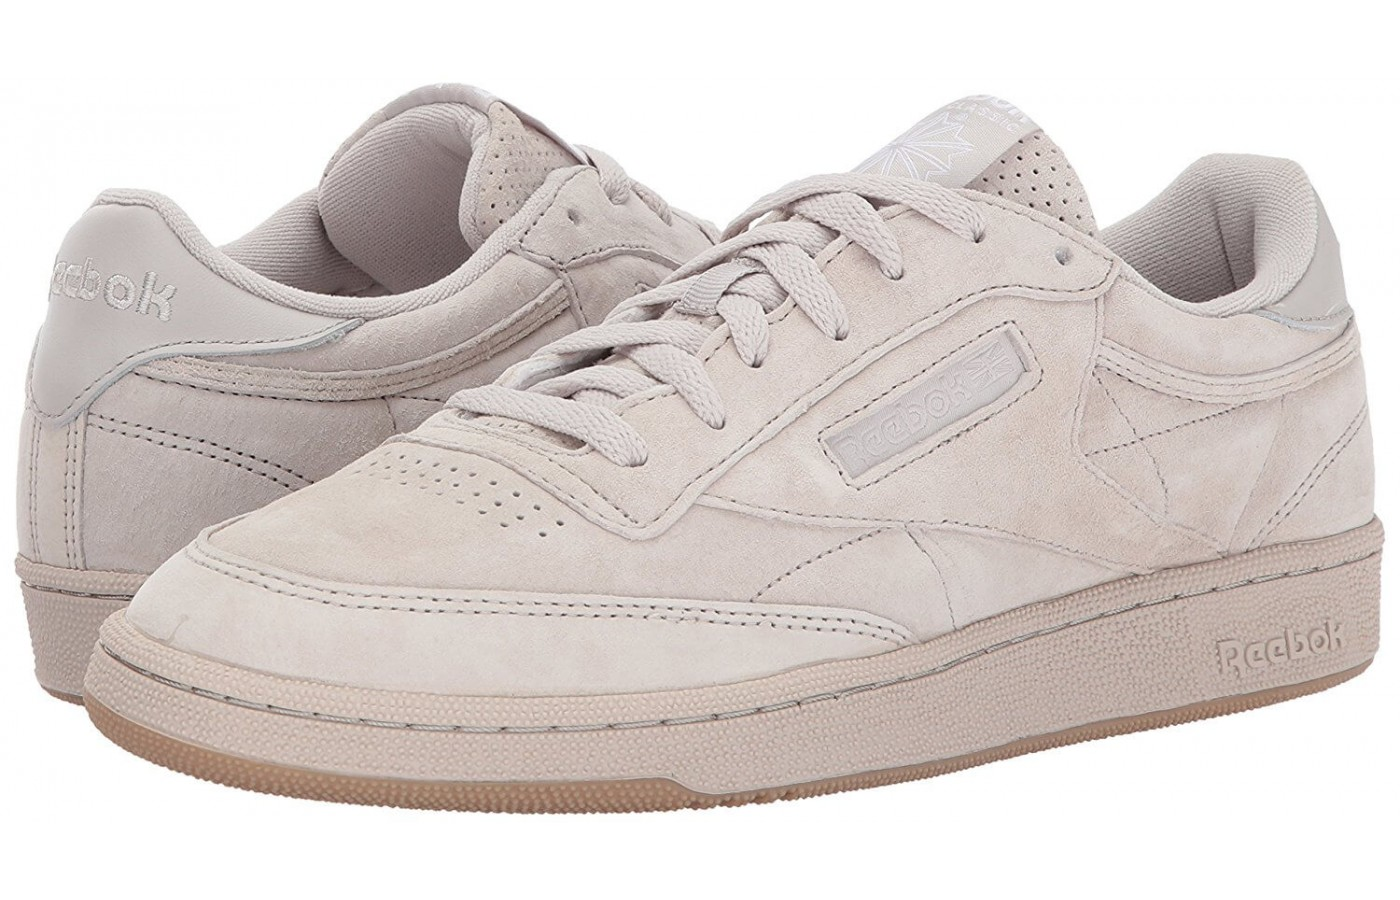 The Reebok Club C 85 has a leather upper